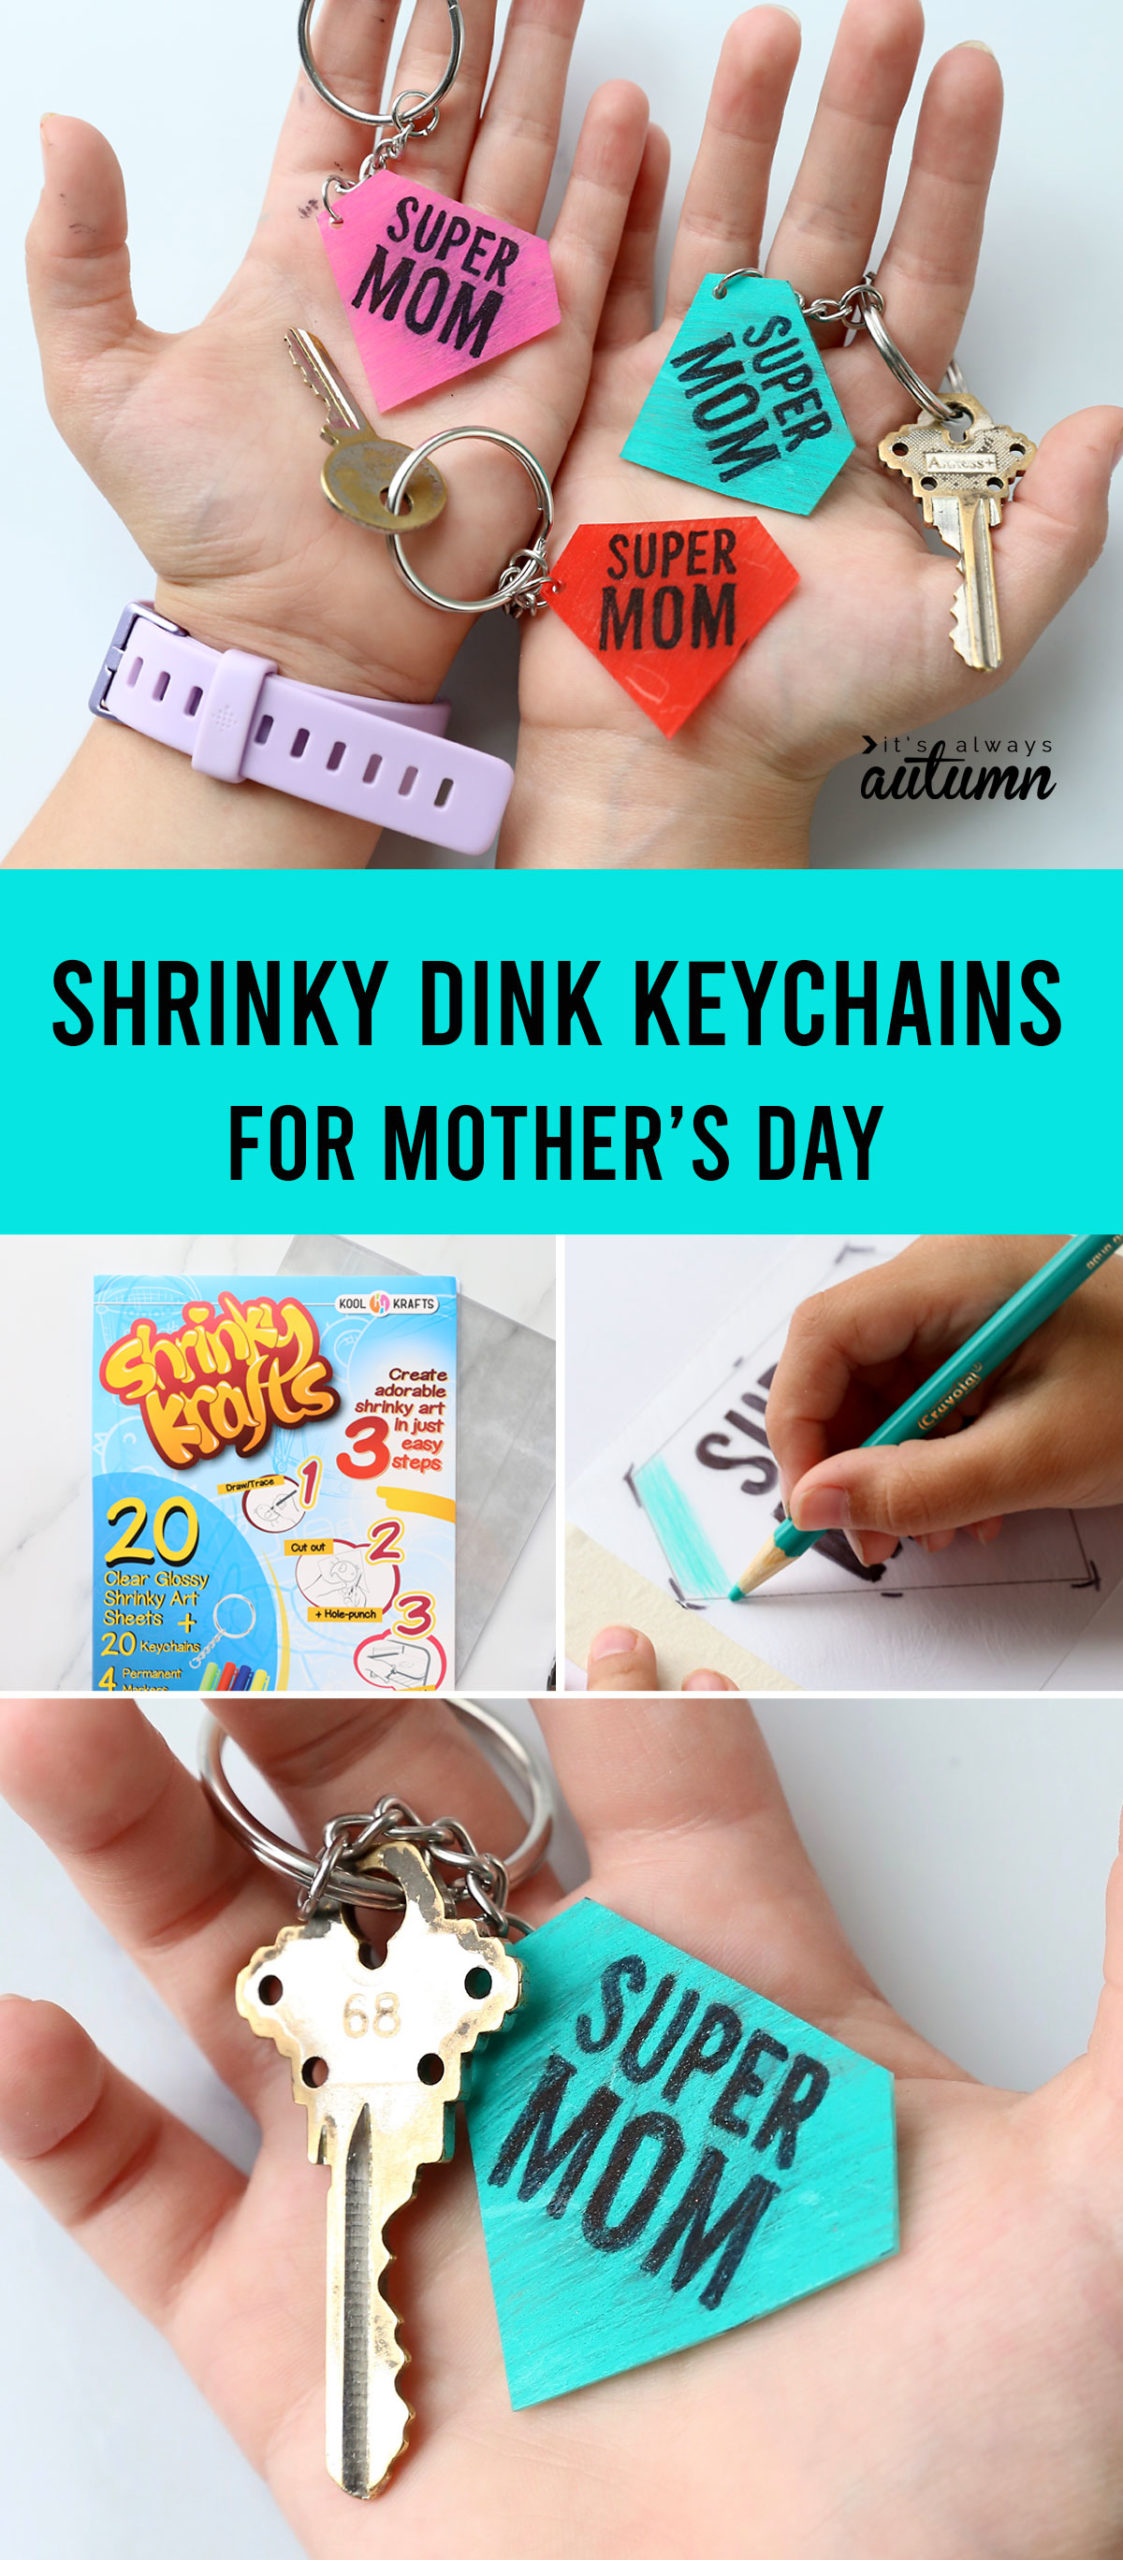 Collage photo: hands holding super mom keychains; shrinky dink paper; hand coloring in a keychain